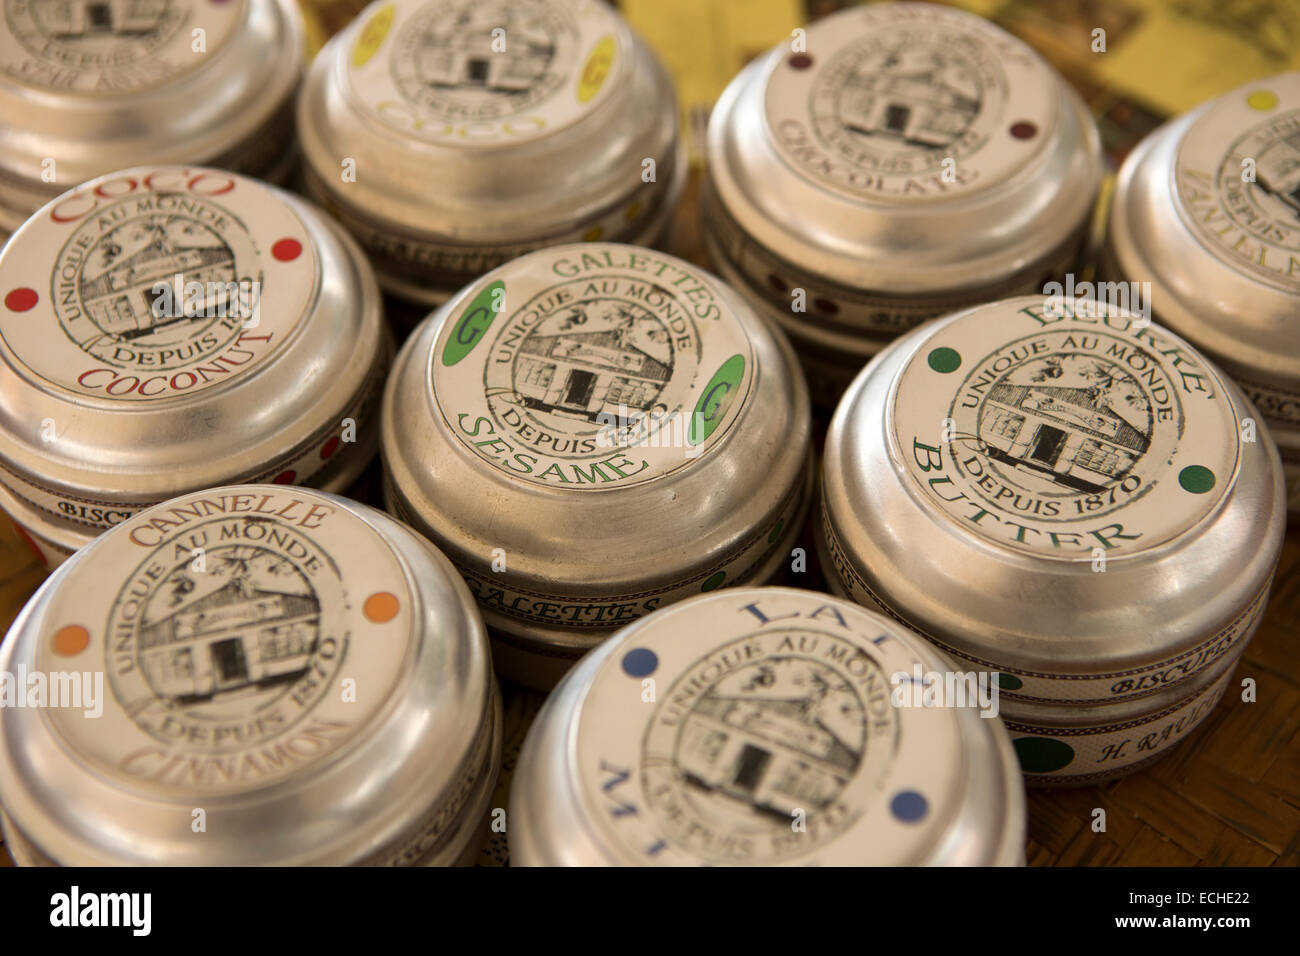 Mauritius, Mahebourg, Biscuiterie Rault Manioc Biscuit factory, tins of biscuits Stock Photo